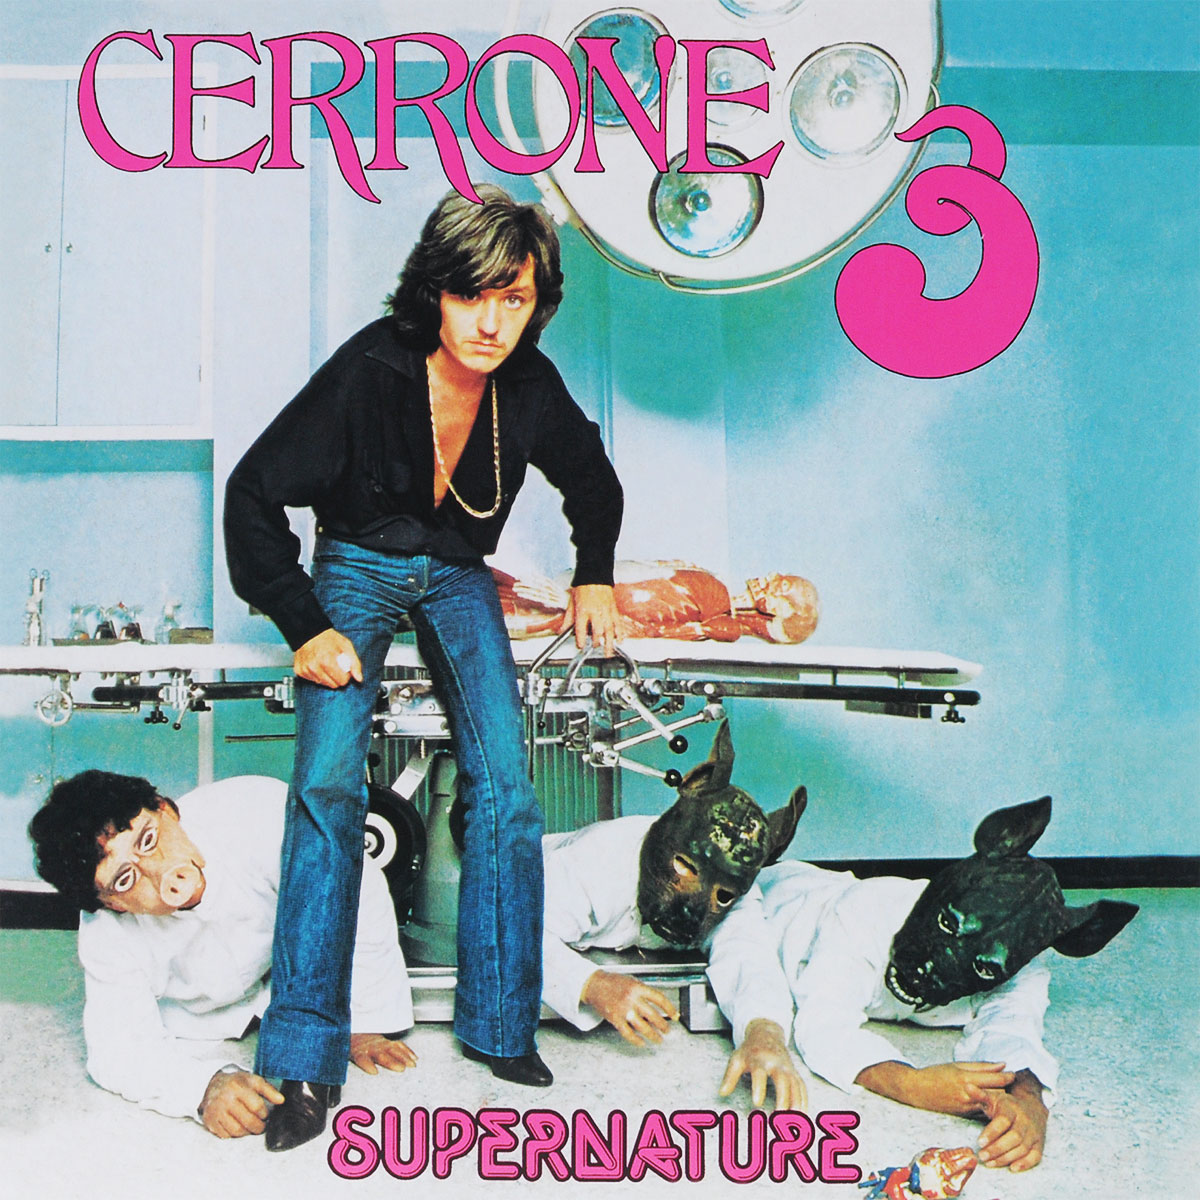 цена на Cerrone Cerrone. Supernature (LP)